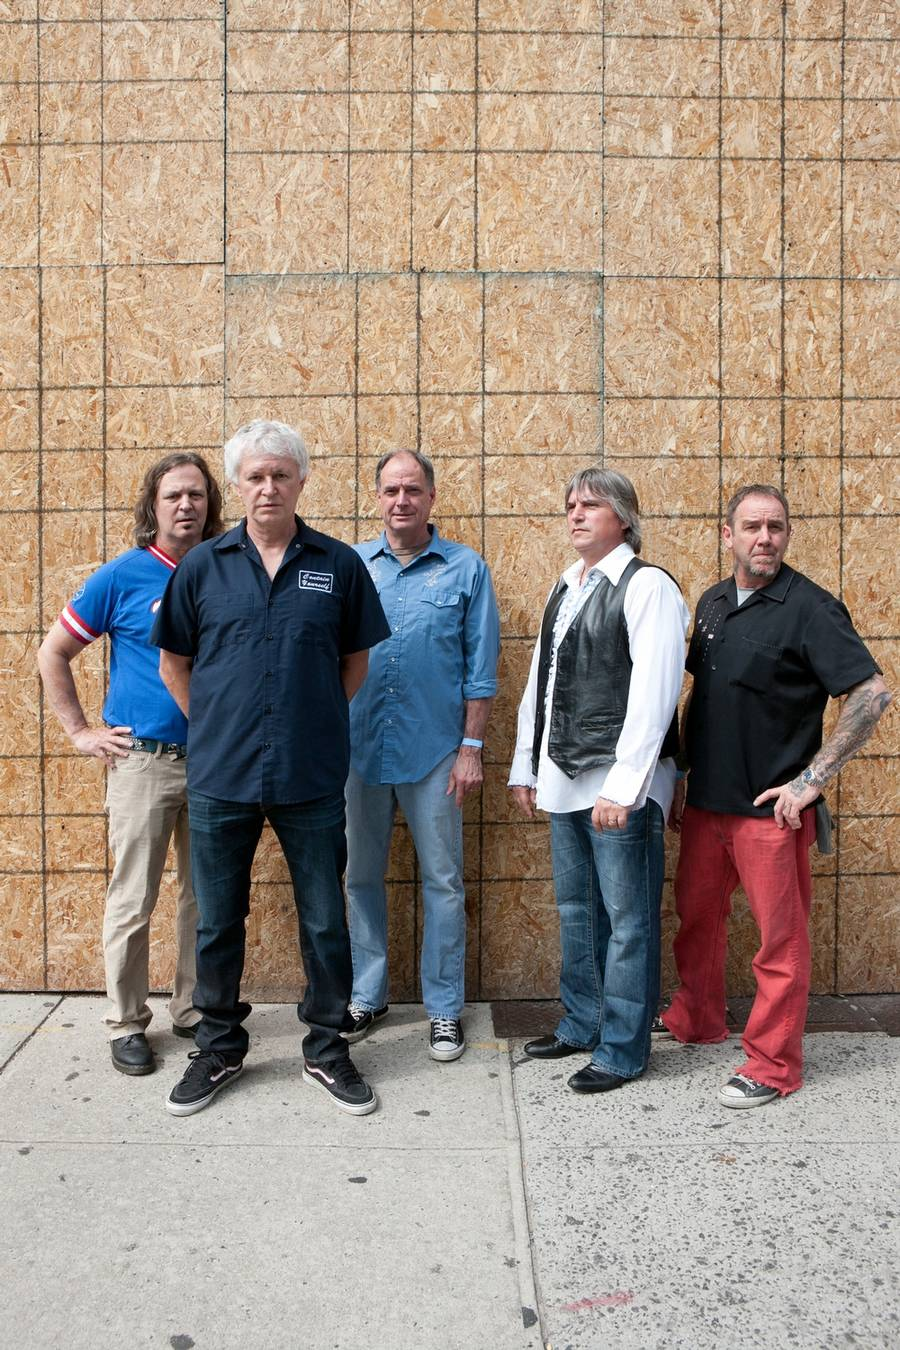 Guided By Voices - som en jukeboks fuld af suspekte hits. (Foto: Beowulf Sheehan)